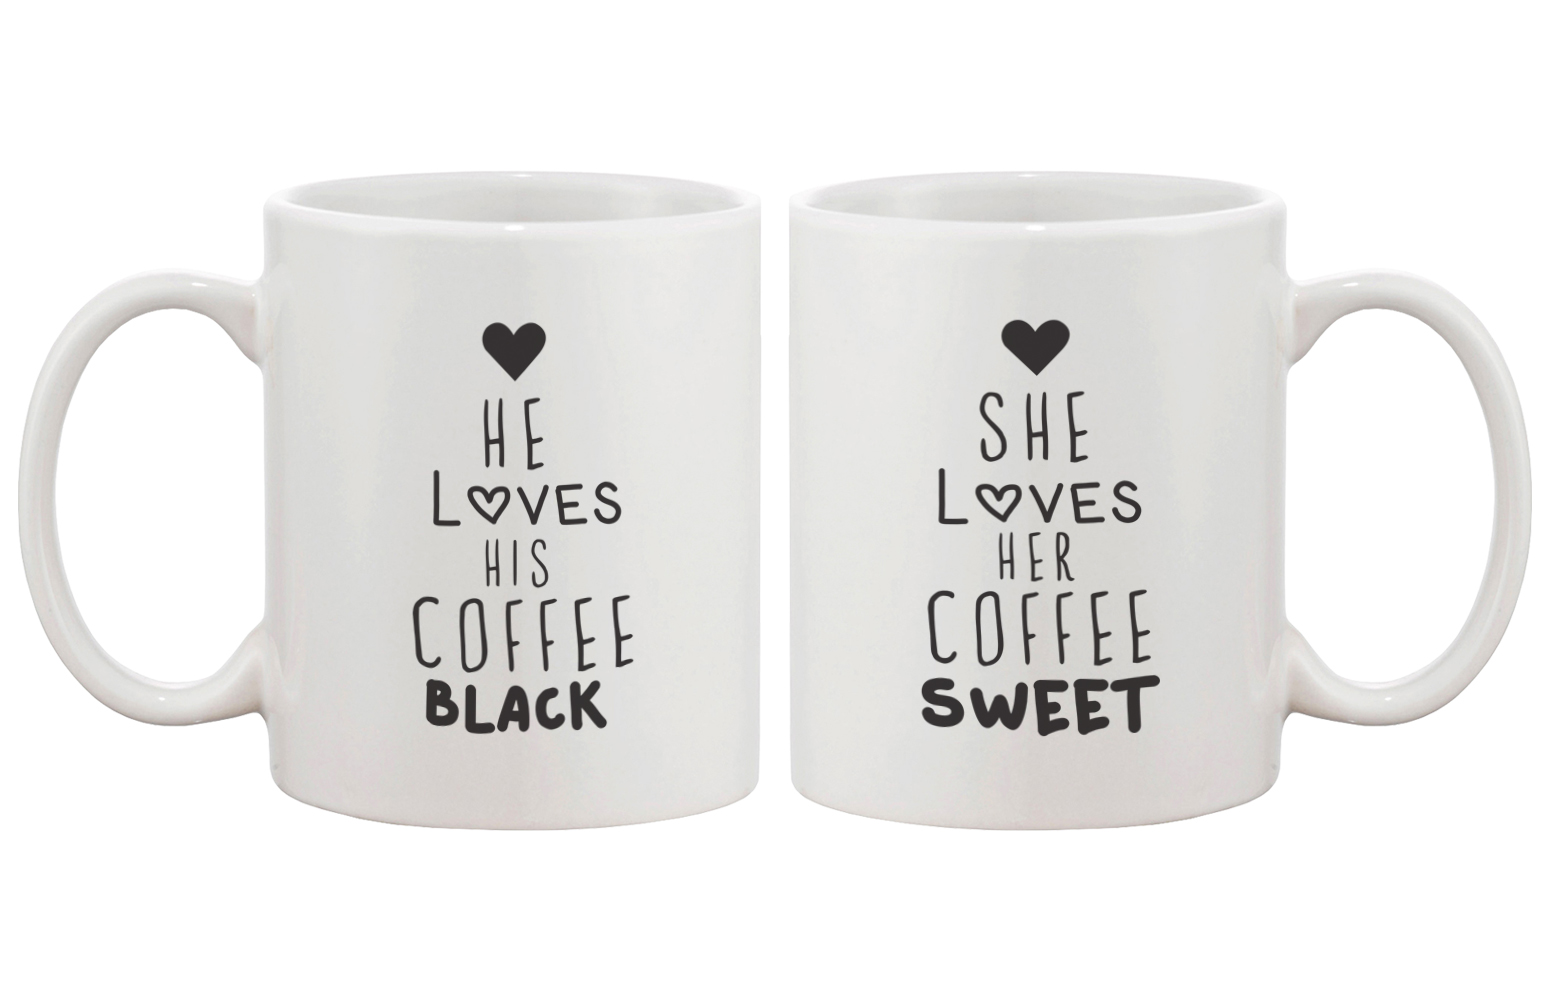 Black Coffee Matching Couple Mugs 6af2e9443c74